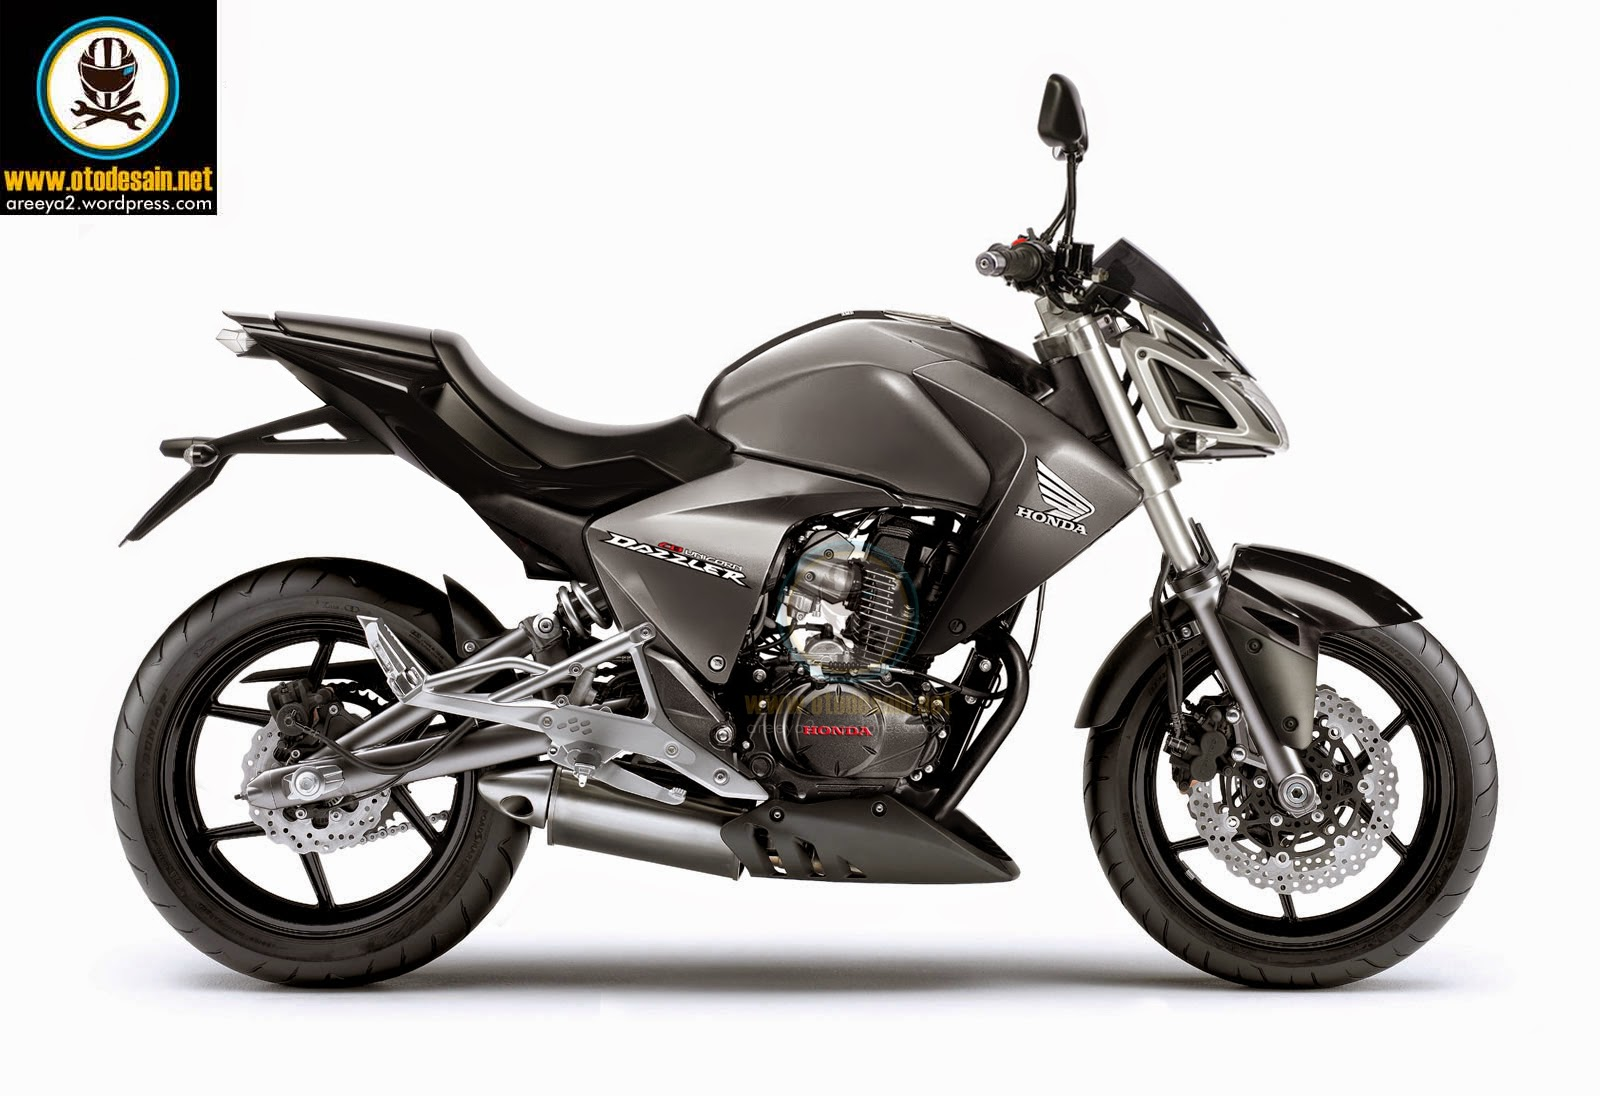 Modifikasi Motor New Megapro Street Fighter